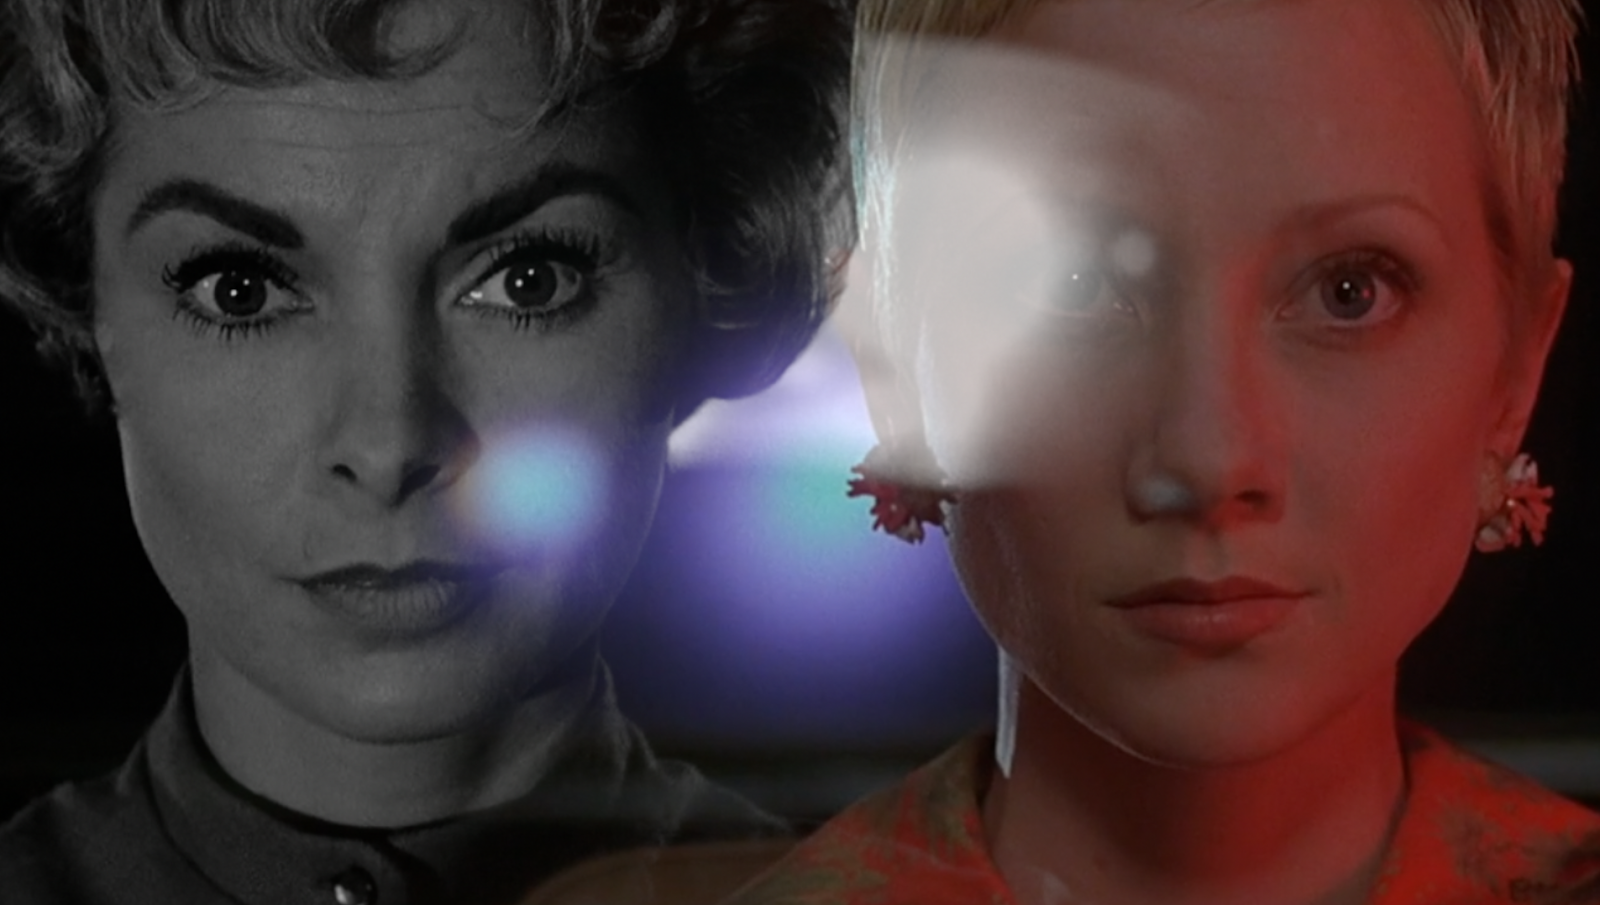 marion-crane-janet-leigh-anne-heche.png